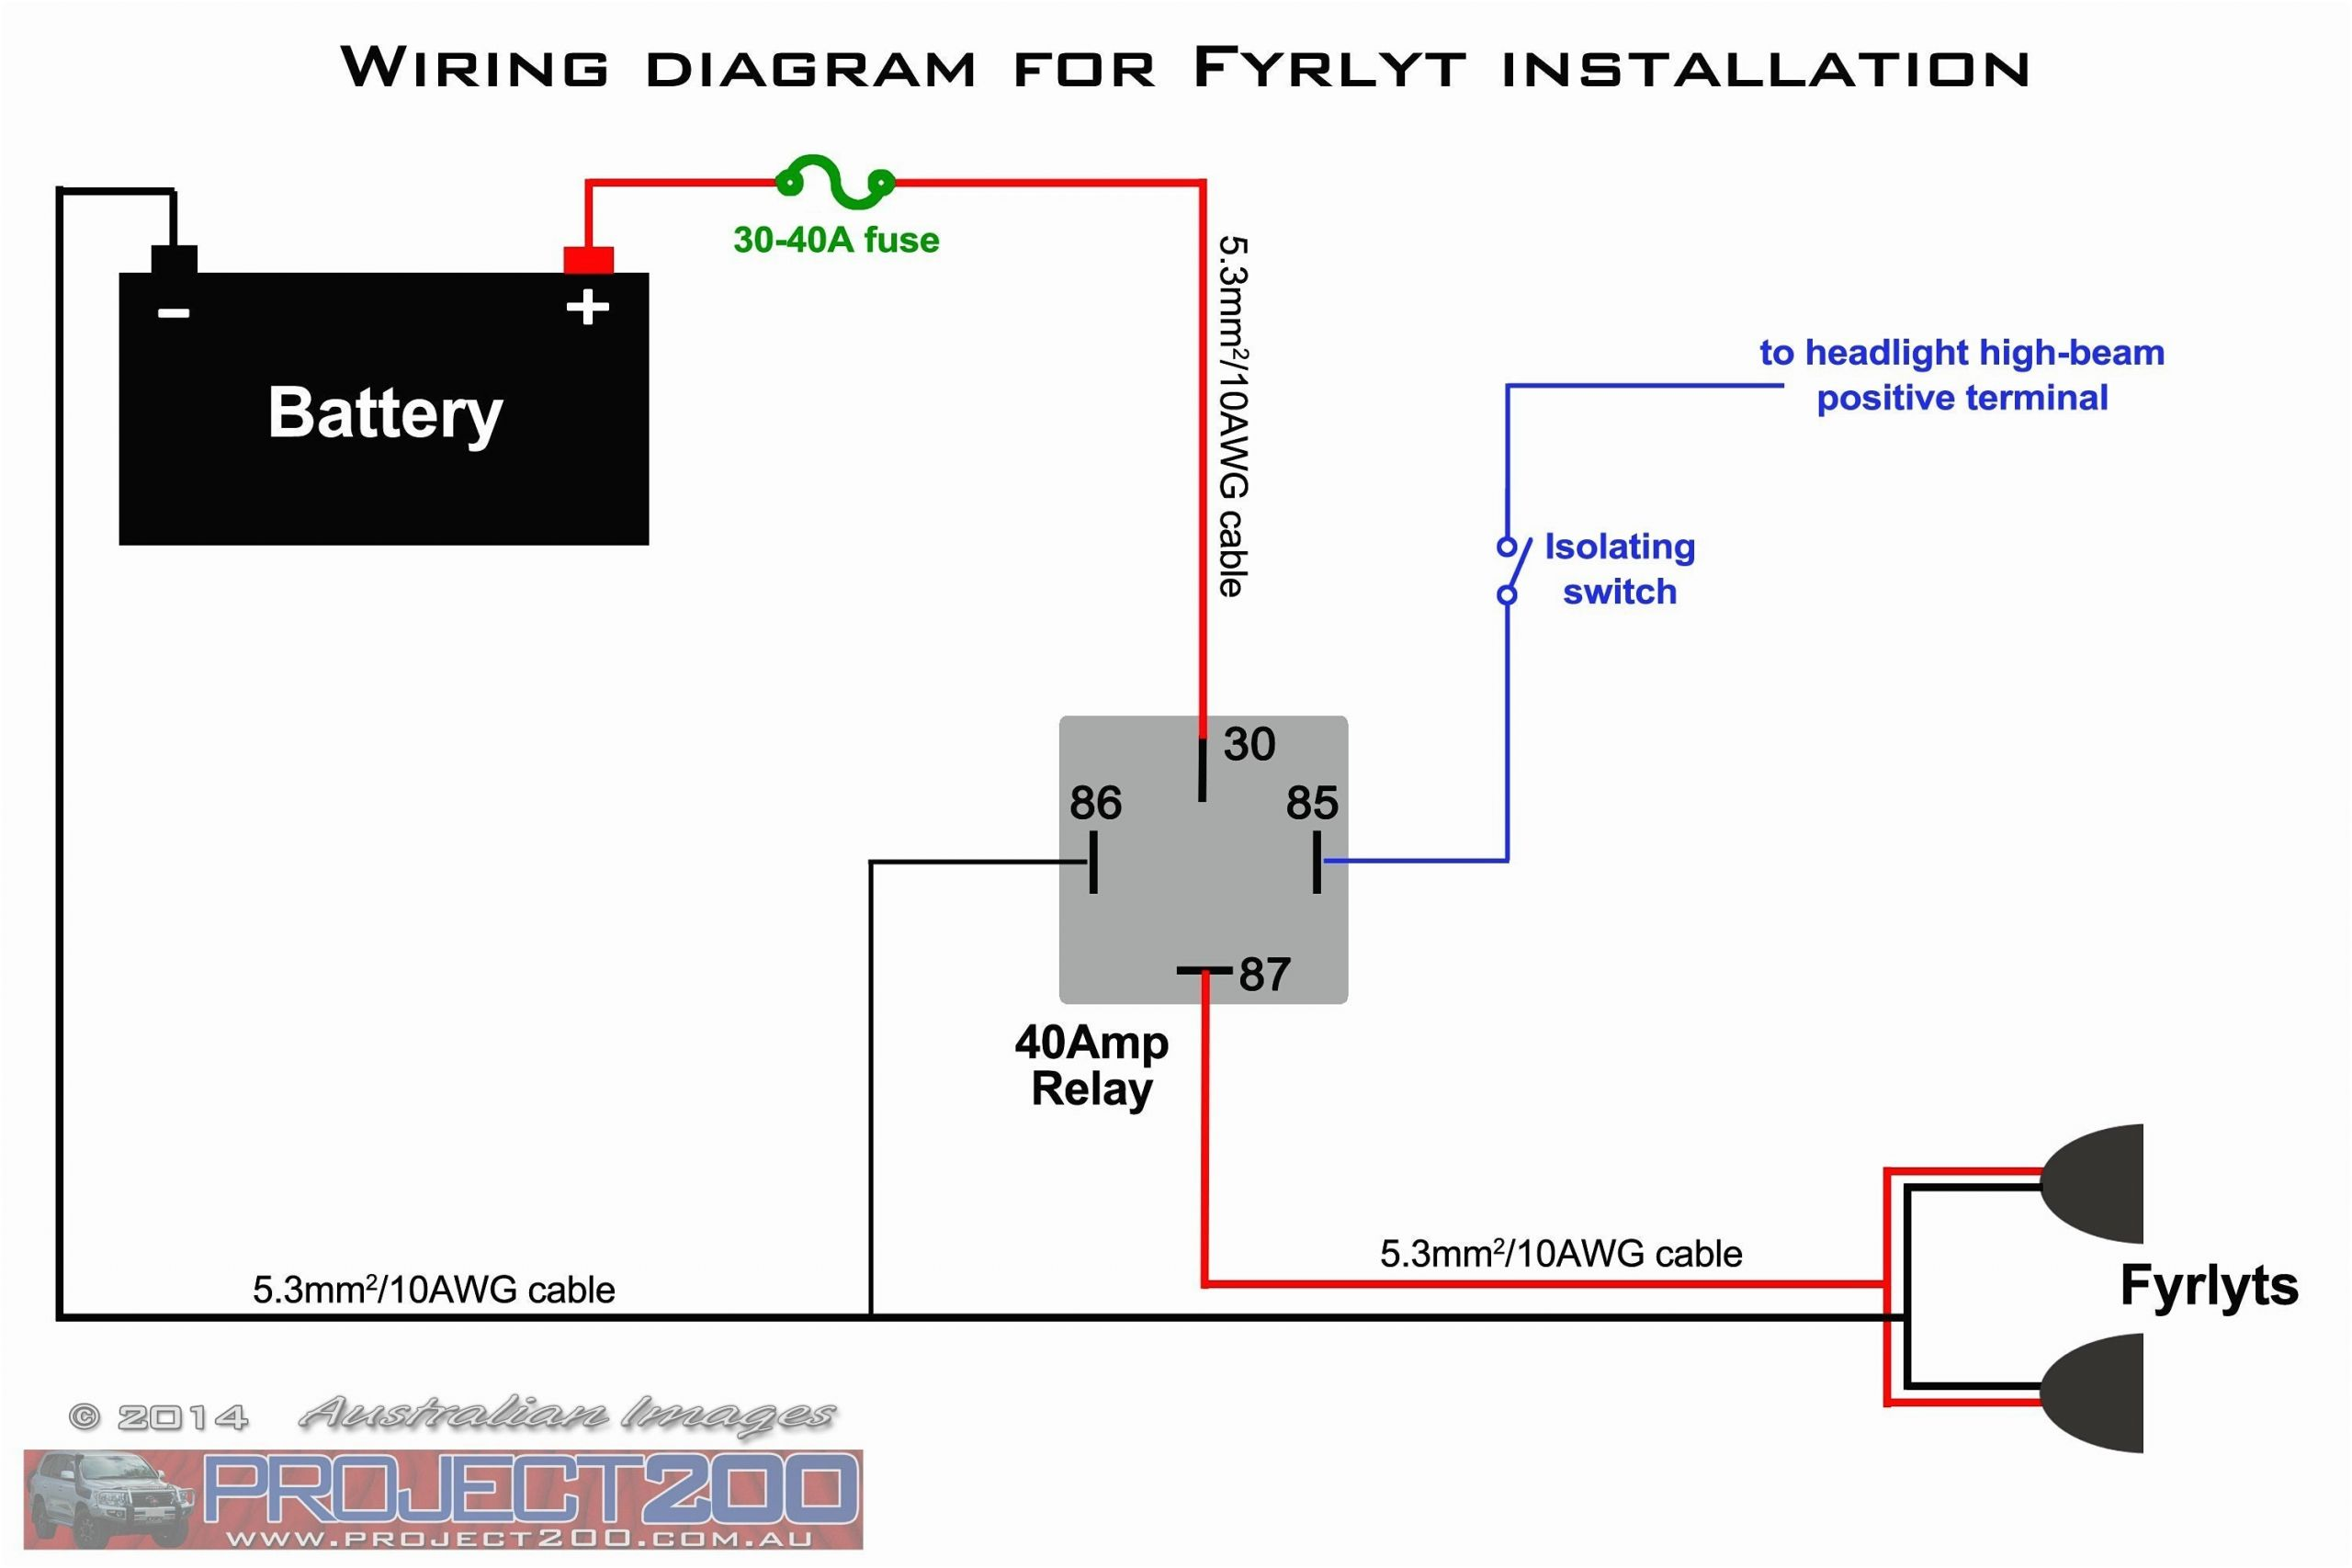 How 2 Pin Flasher Relay Work 2 Pin Flasher Relay Wiring Diagram Of How 2 Pin Flasher Relay Work